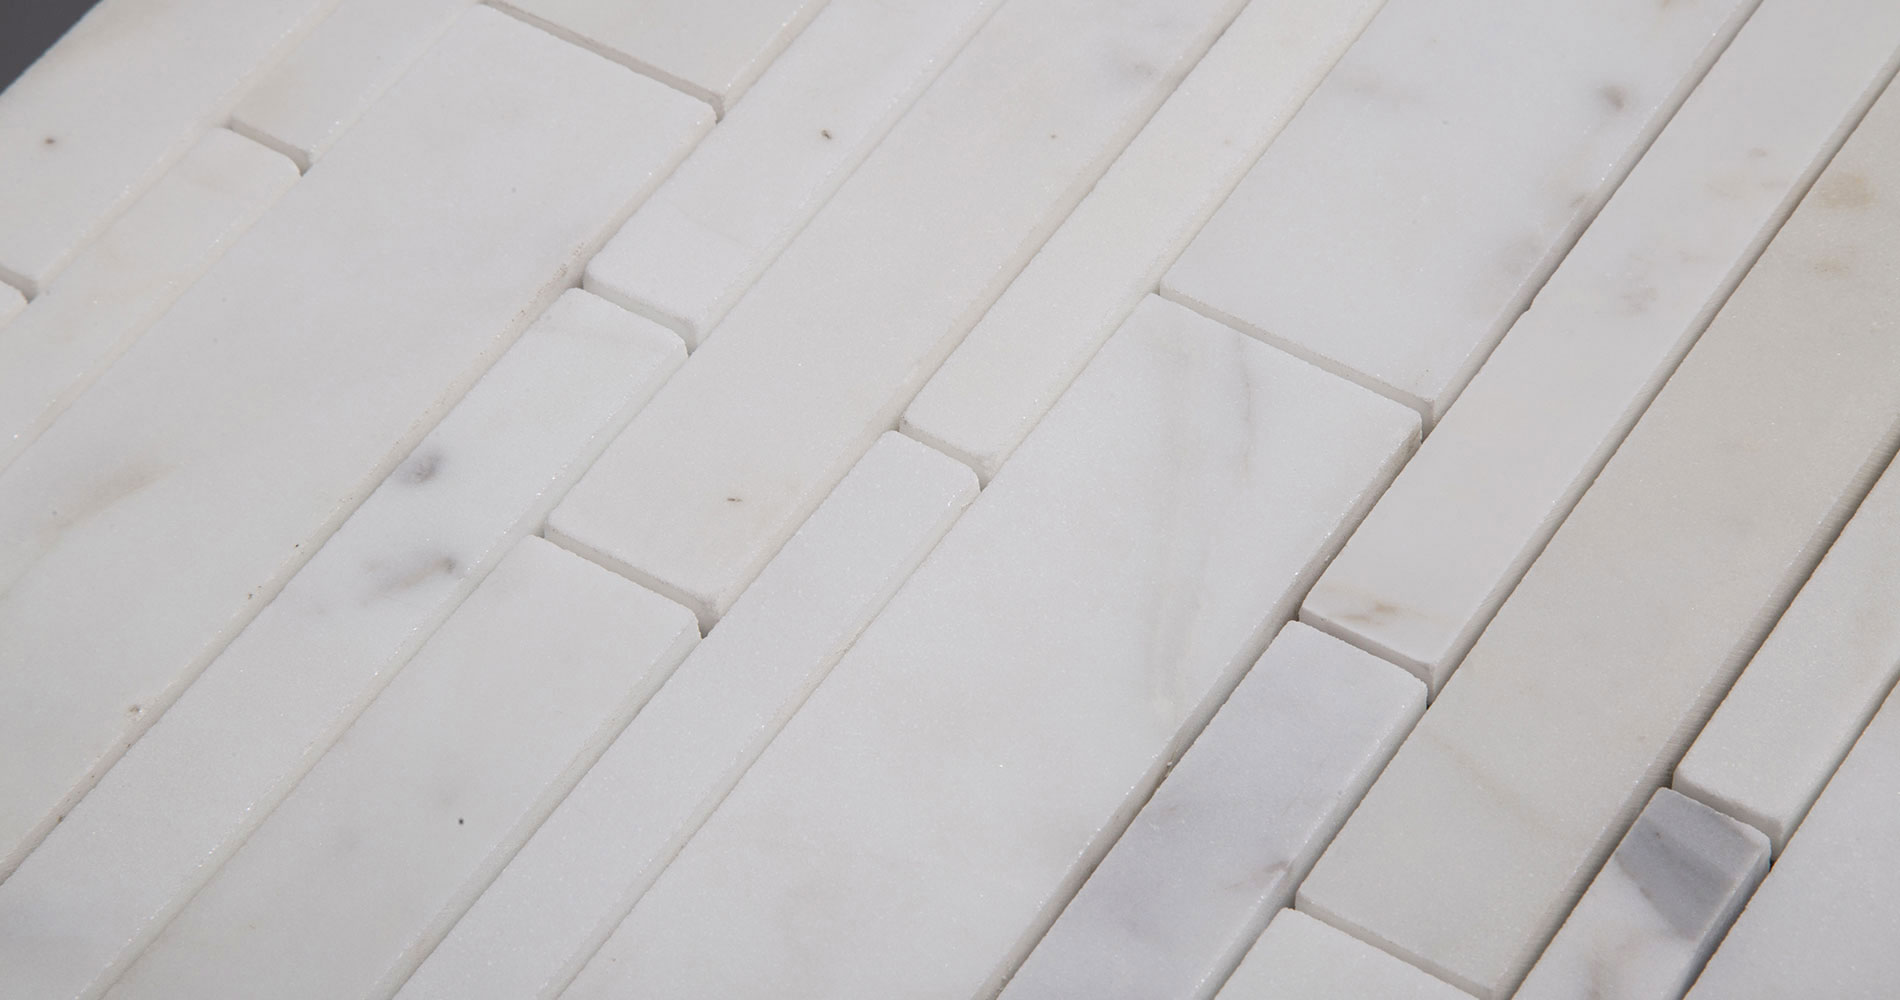 centurymosaic-Interlocking-Strip-Marble-Mosaic-Tile-2